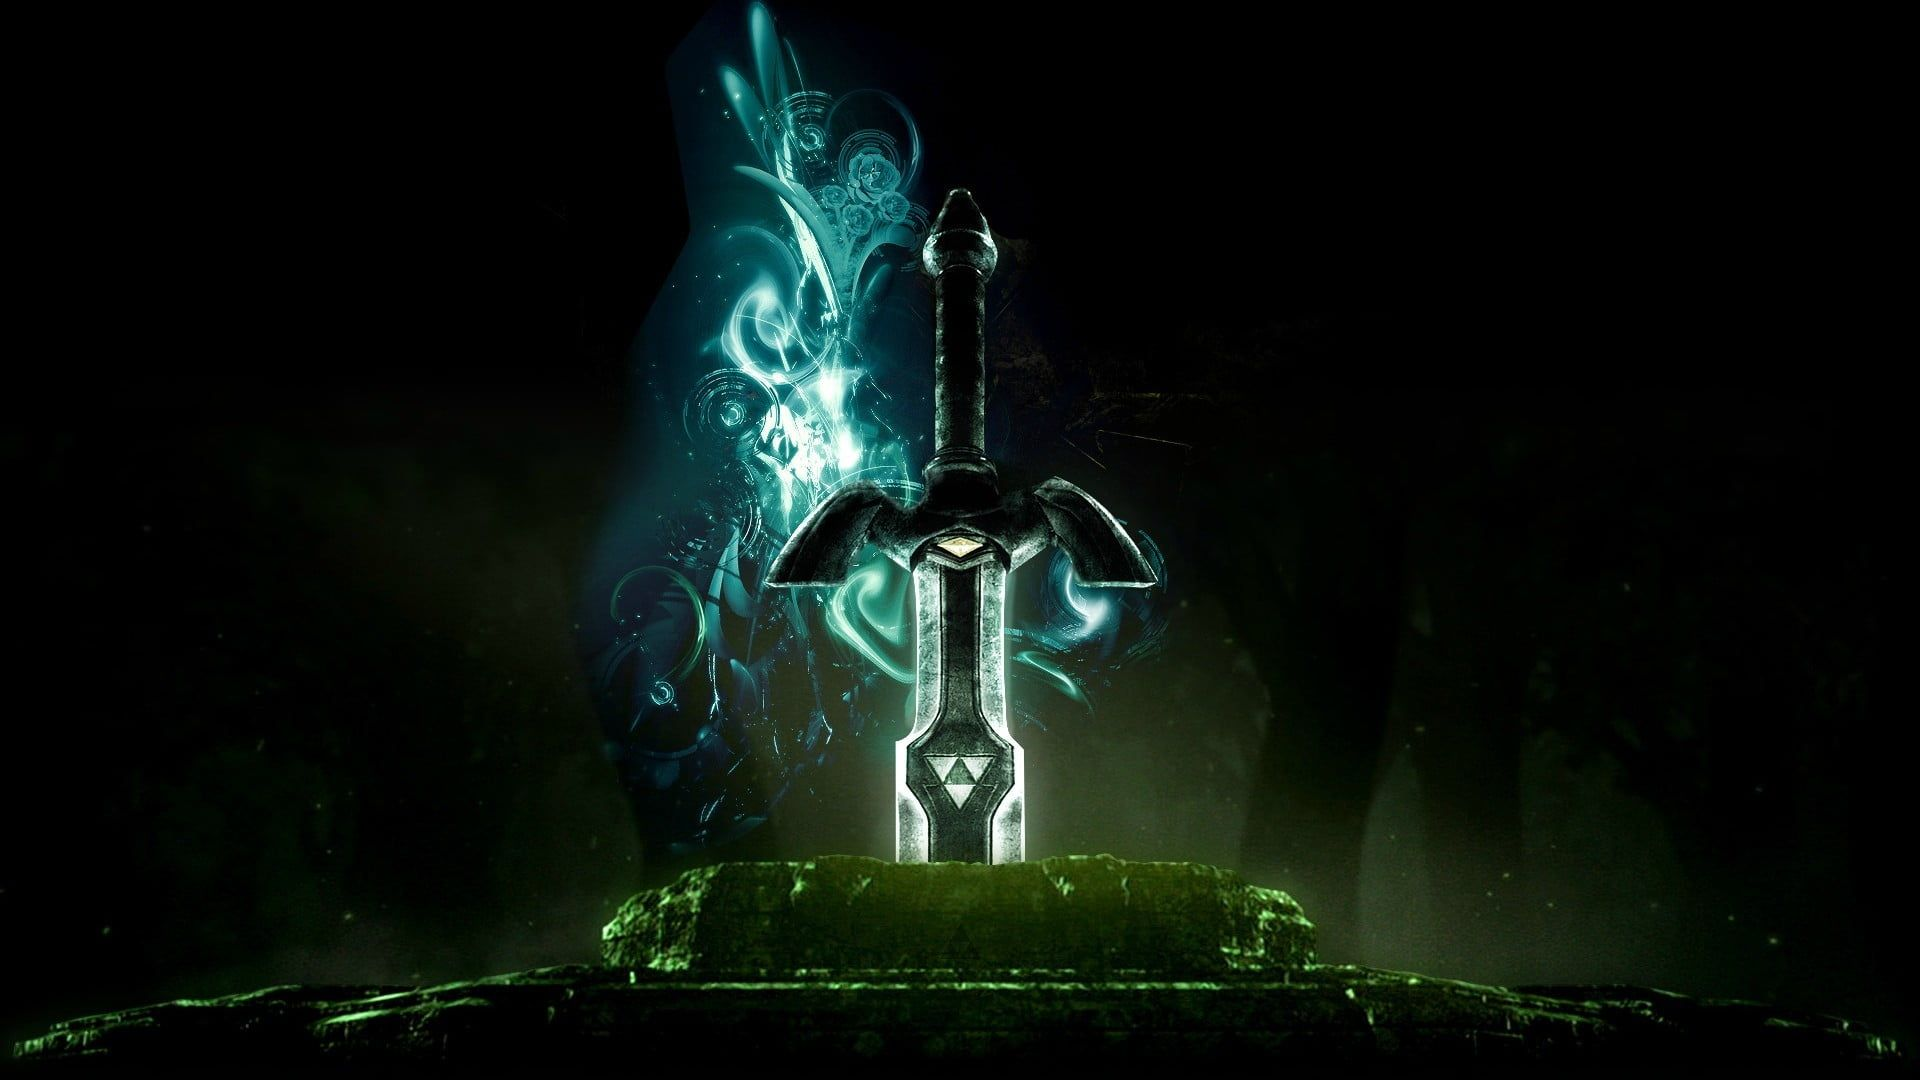 Black And Gray Sword Wallpaper The Legend Of Zelda Master Sword 1080p Wallpaper Hdwallpaper Desktop Zelda Master Sword Master Sword Legend Of Zelda